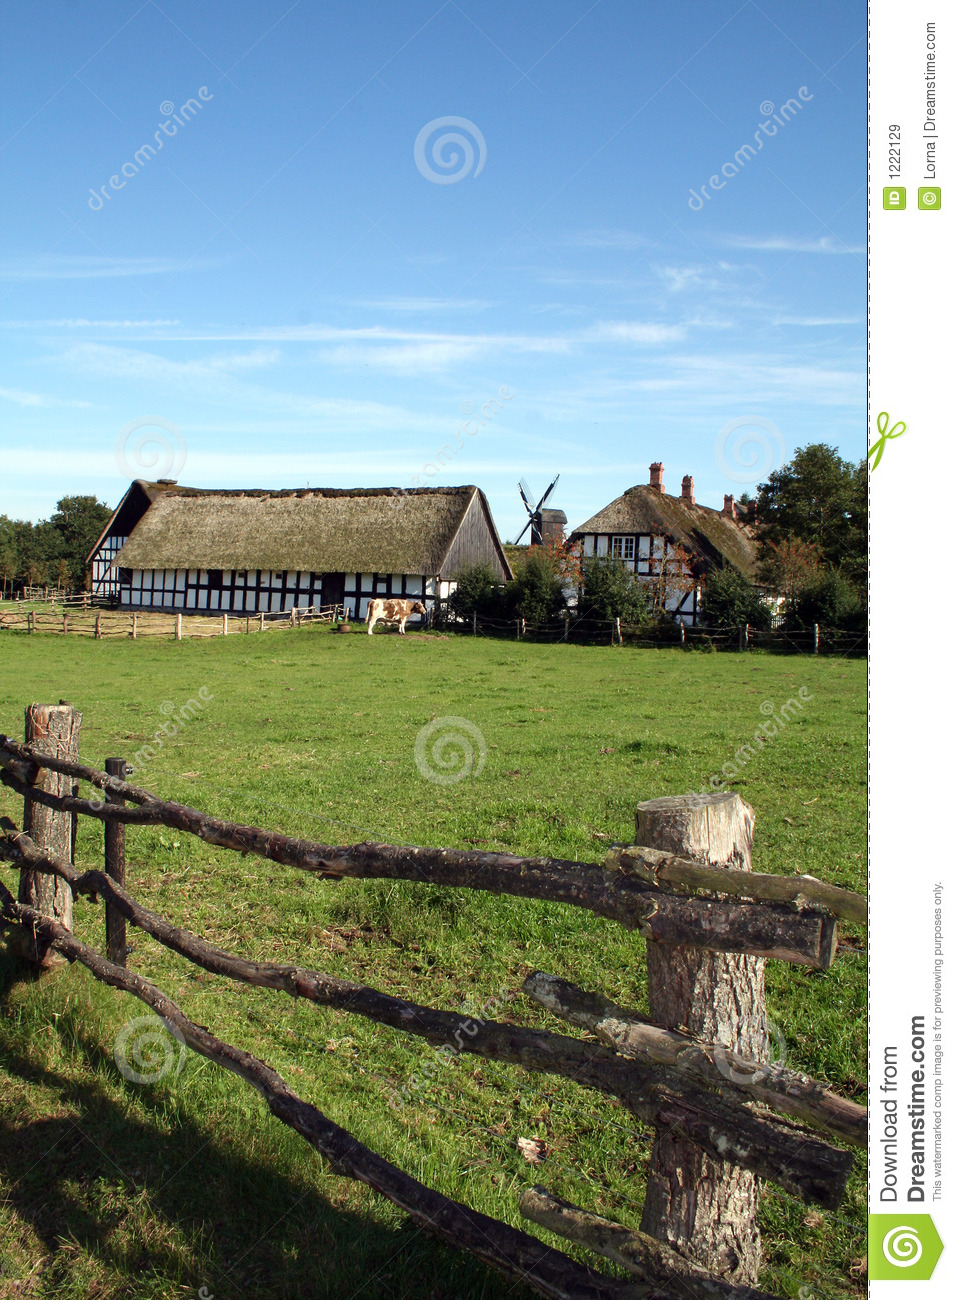 Farm house, traditional farm in black and white tudor style with old ...Western Desert Clipart